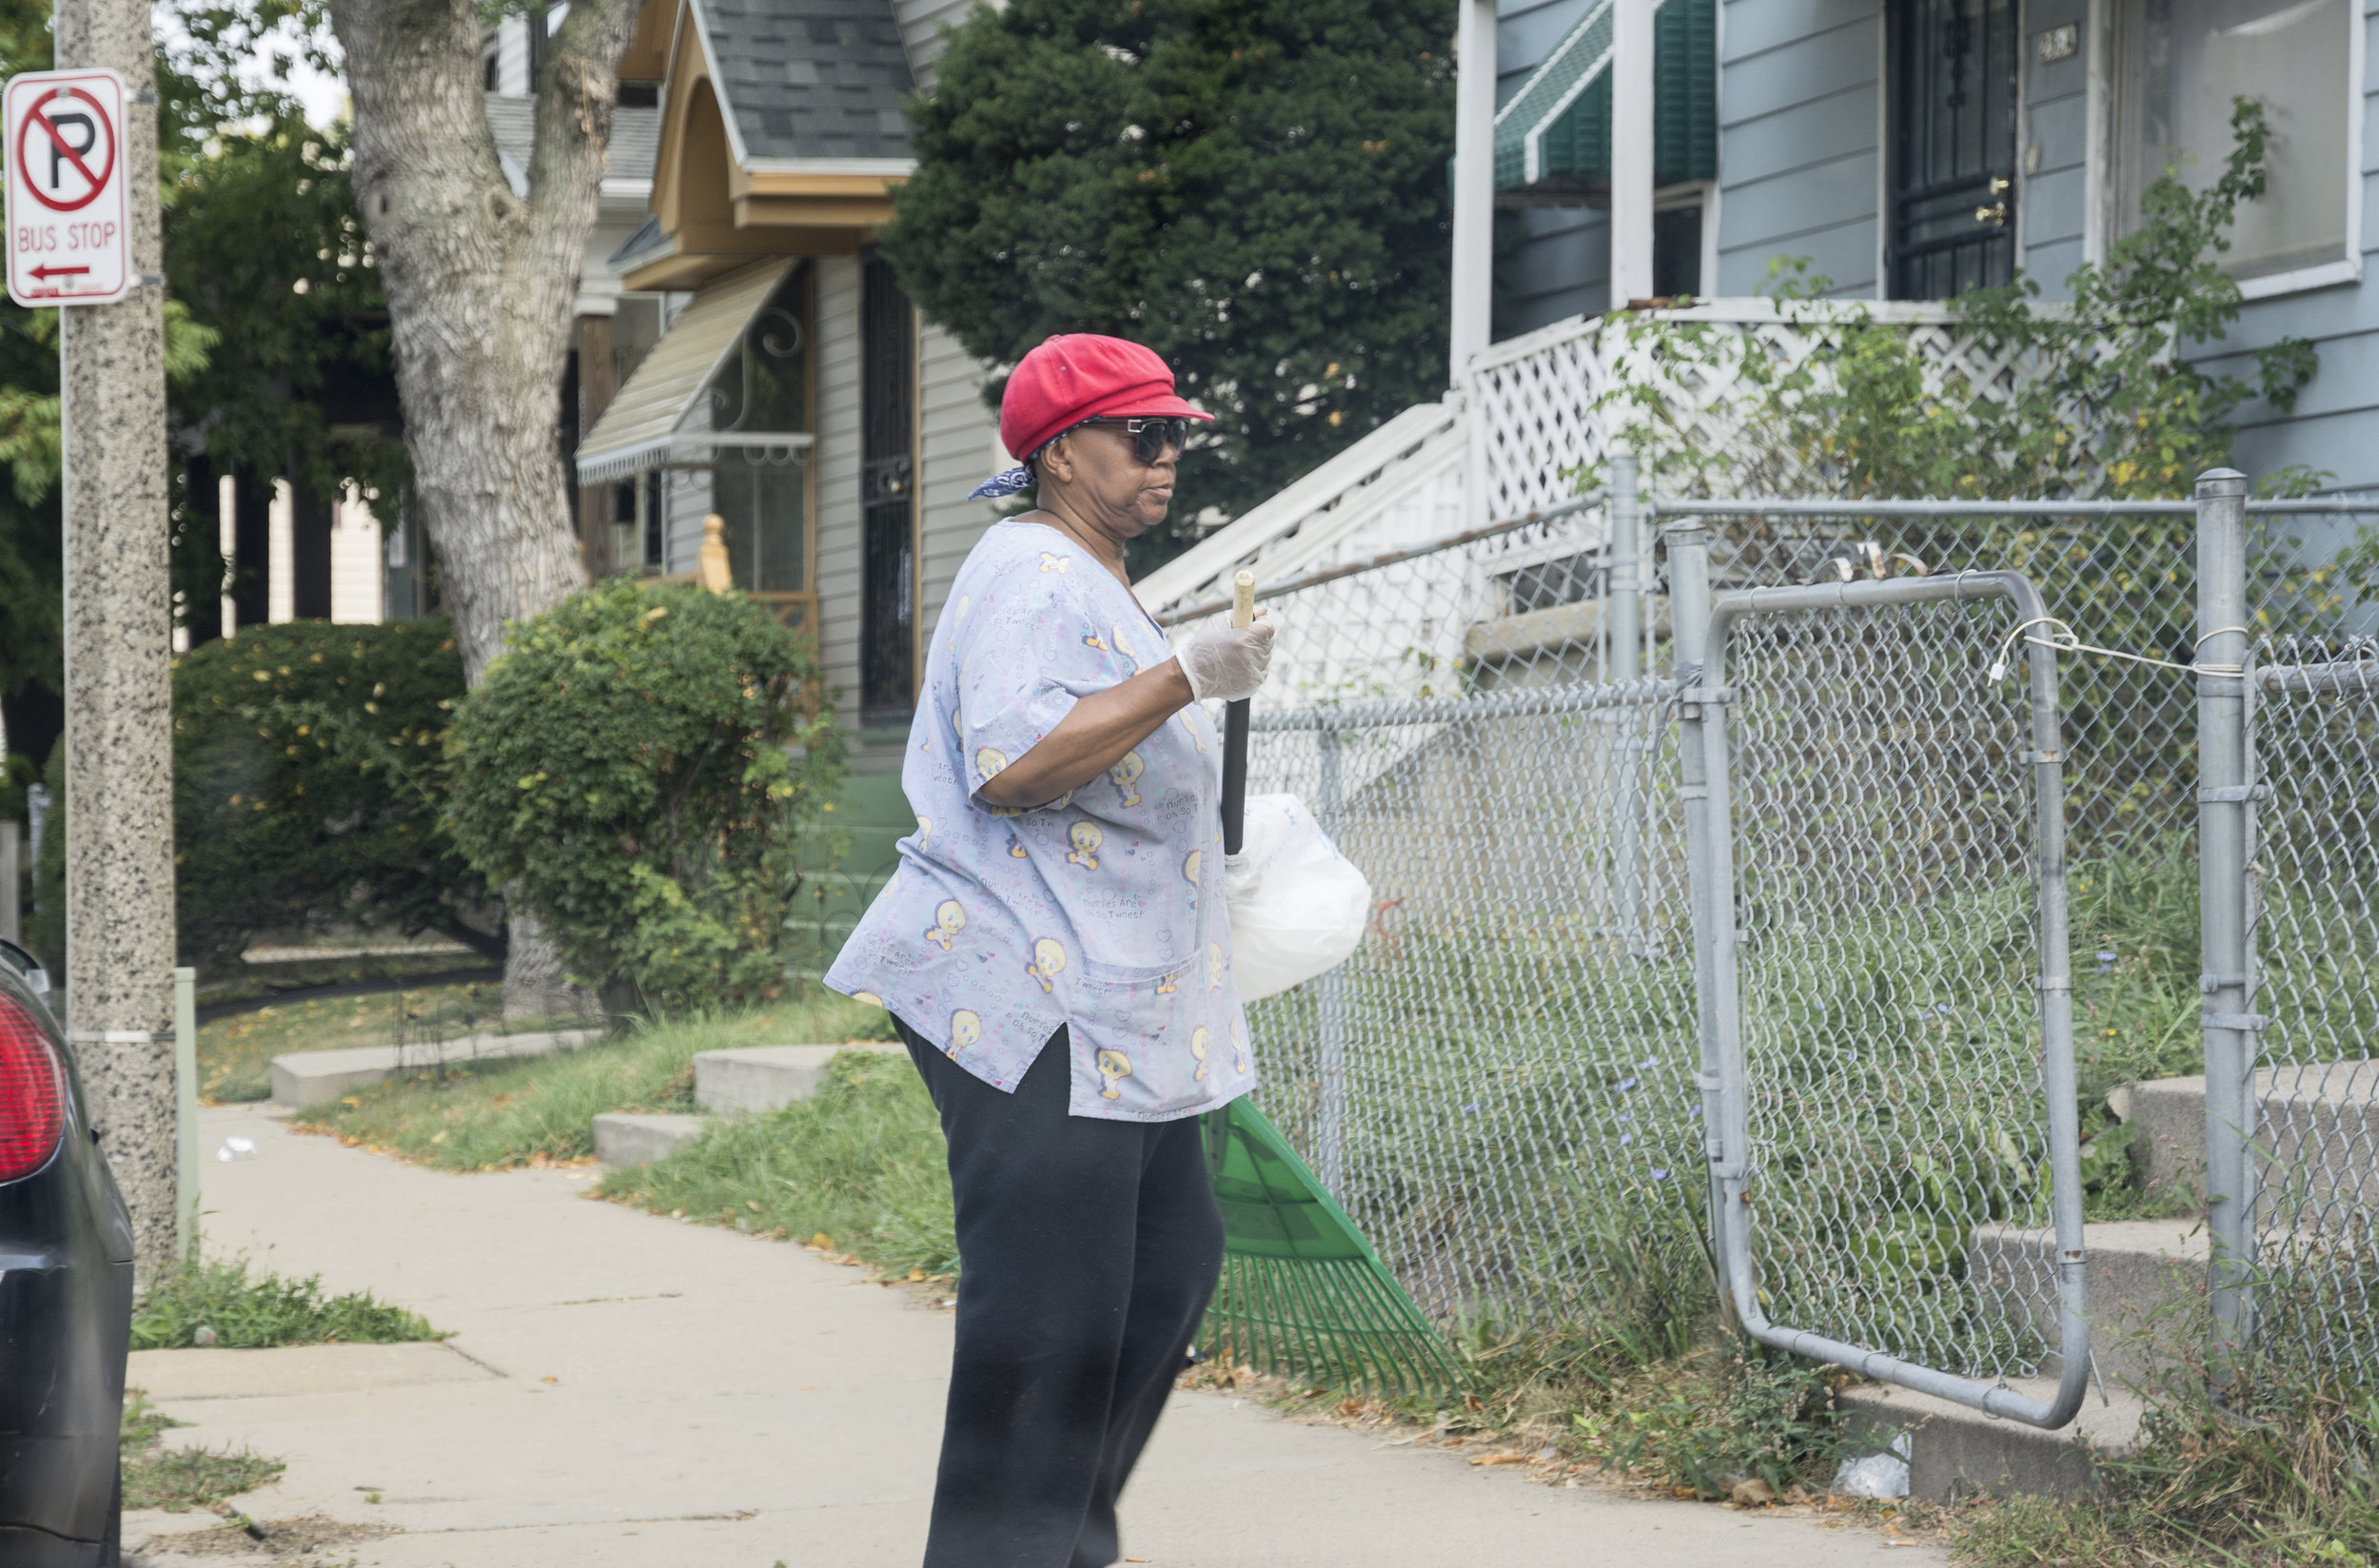 """Elnory Burey is 67. She has lived on this block for 40 years and is one of only two residents who still own their homes. The other homes are either condemned or rentals. She said, """"Folks used to be nice back then. Now there is too much robbing and violence."""""""